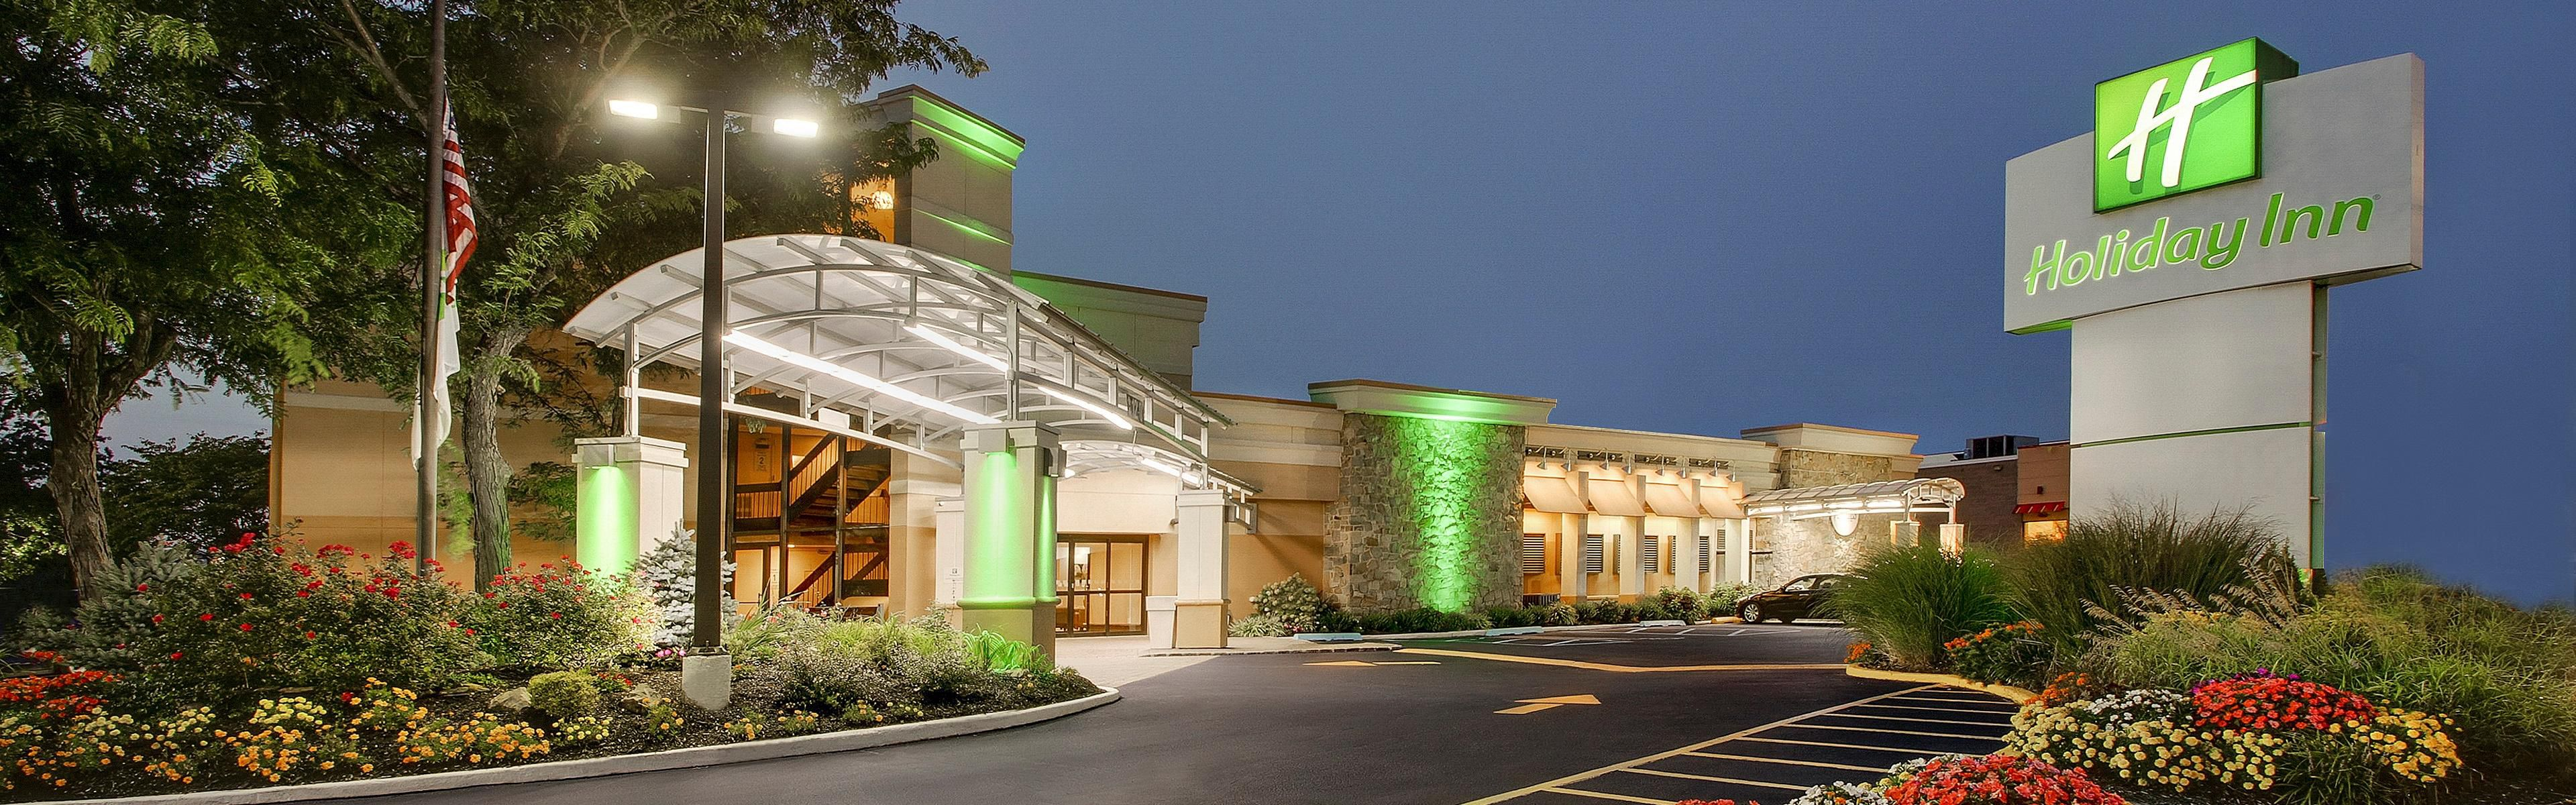 Welcome To The Holiday Inn Westbury, Located In The Heart Of LI!